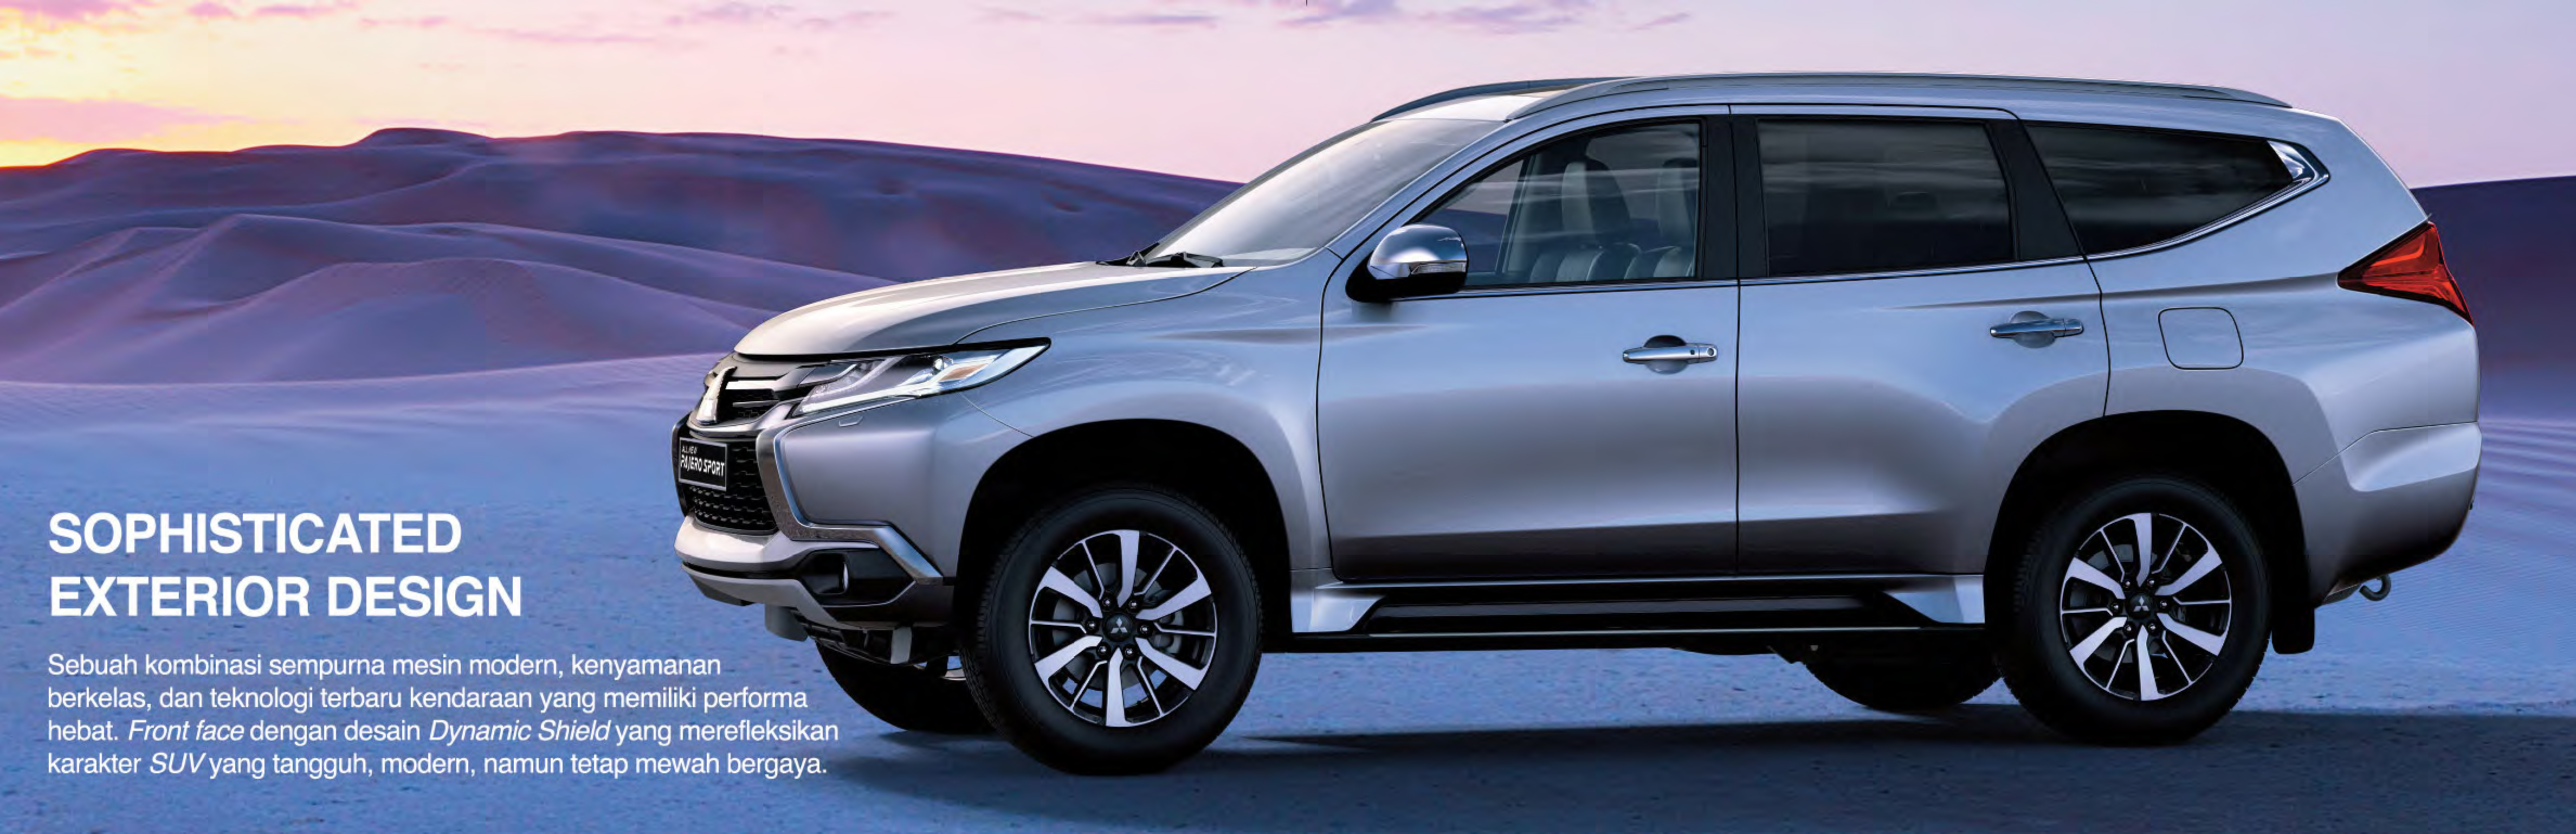 Pajero Sport 2018 Indonesia >> Suv Cars For Sale In The Philippines September 2017 | Autos Post